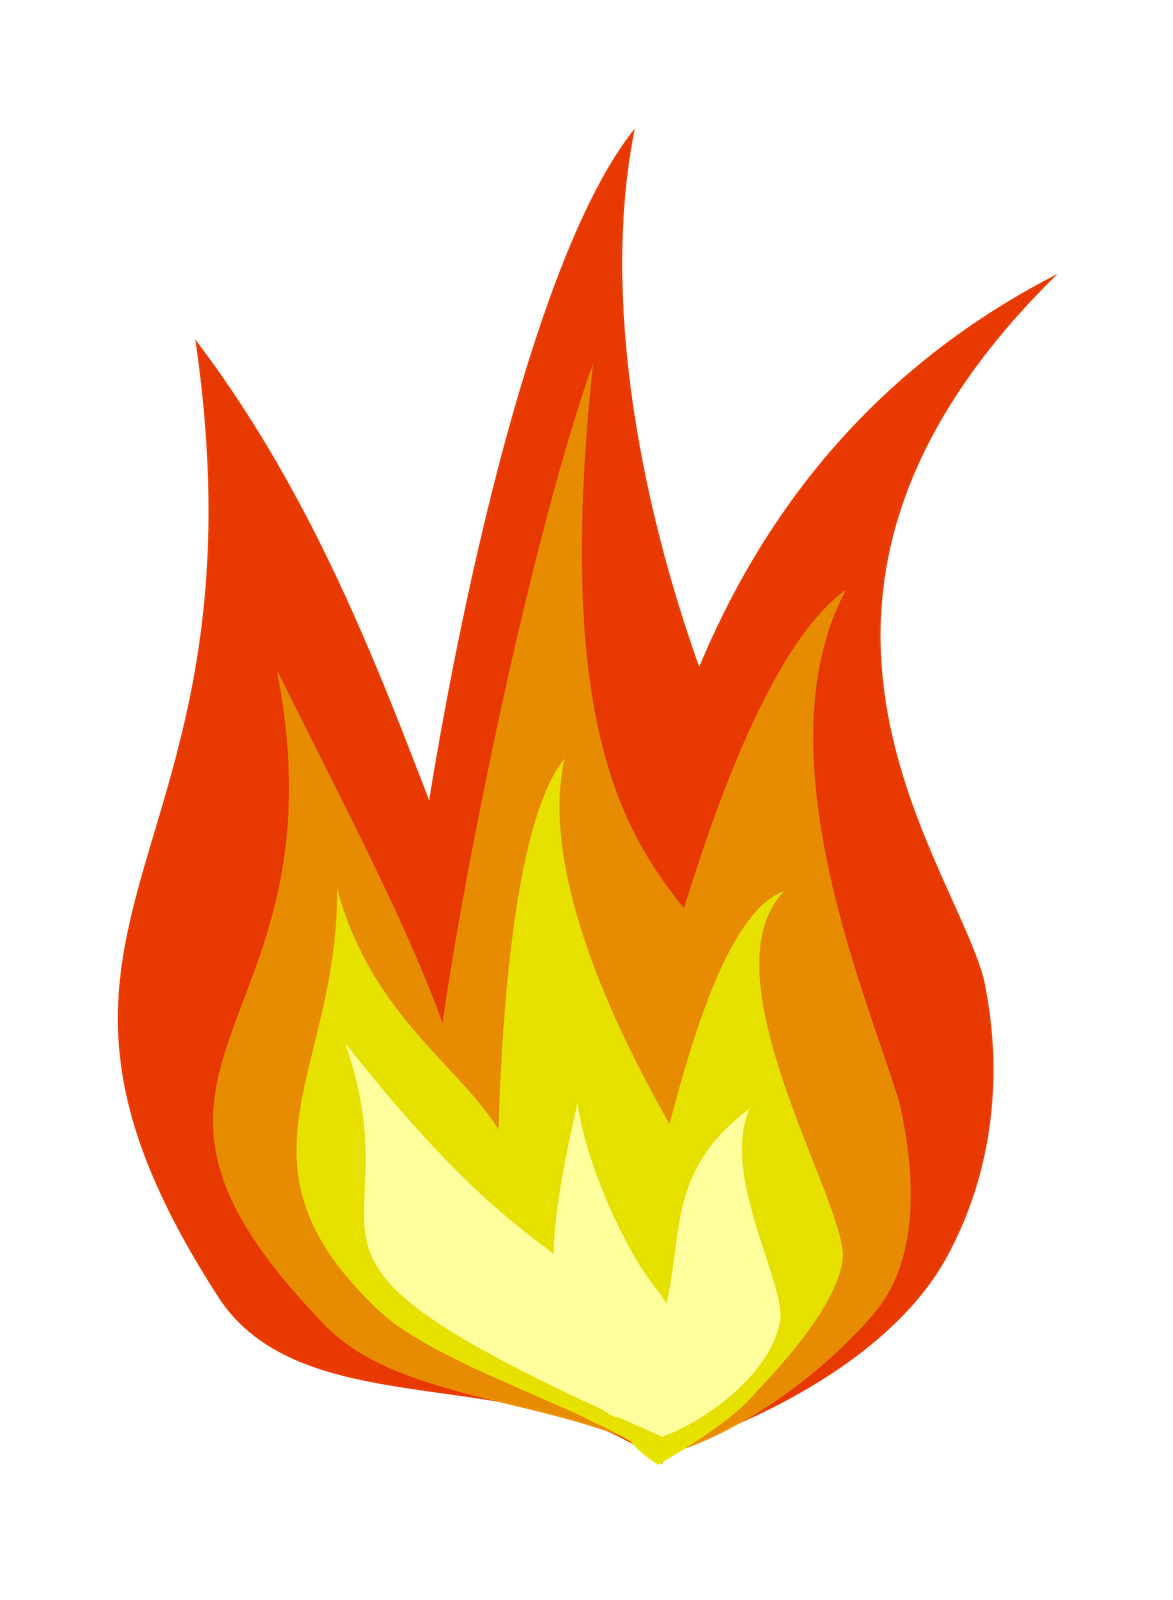 Holy Spirit Tongues Of Fire My prayer for today is  holy.